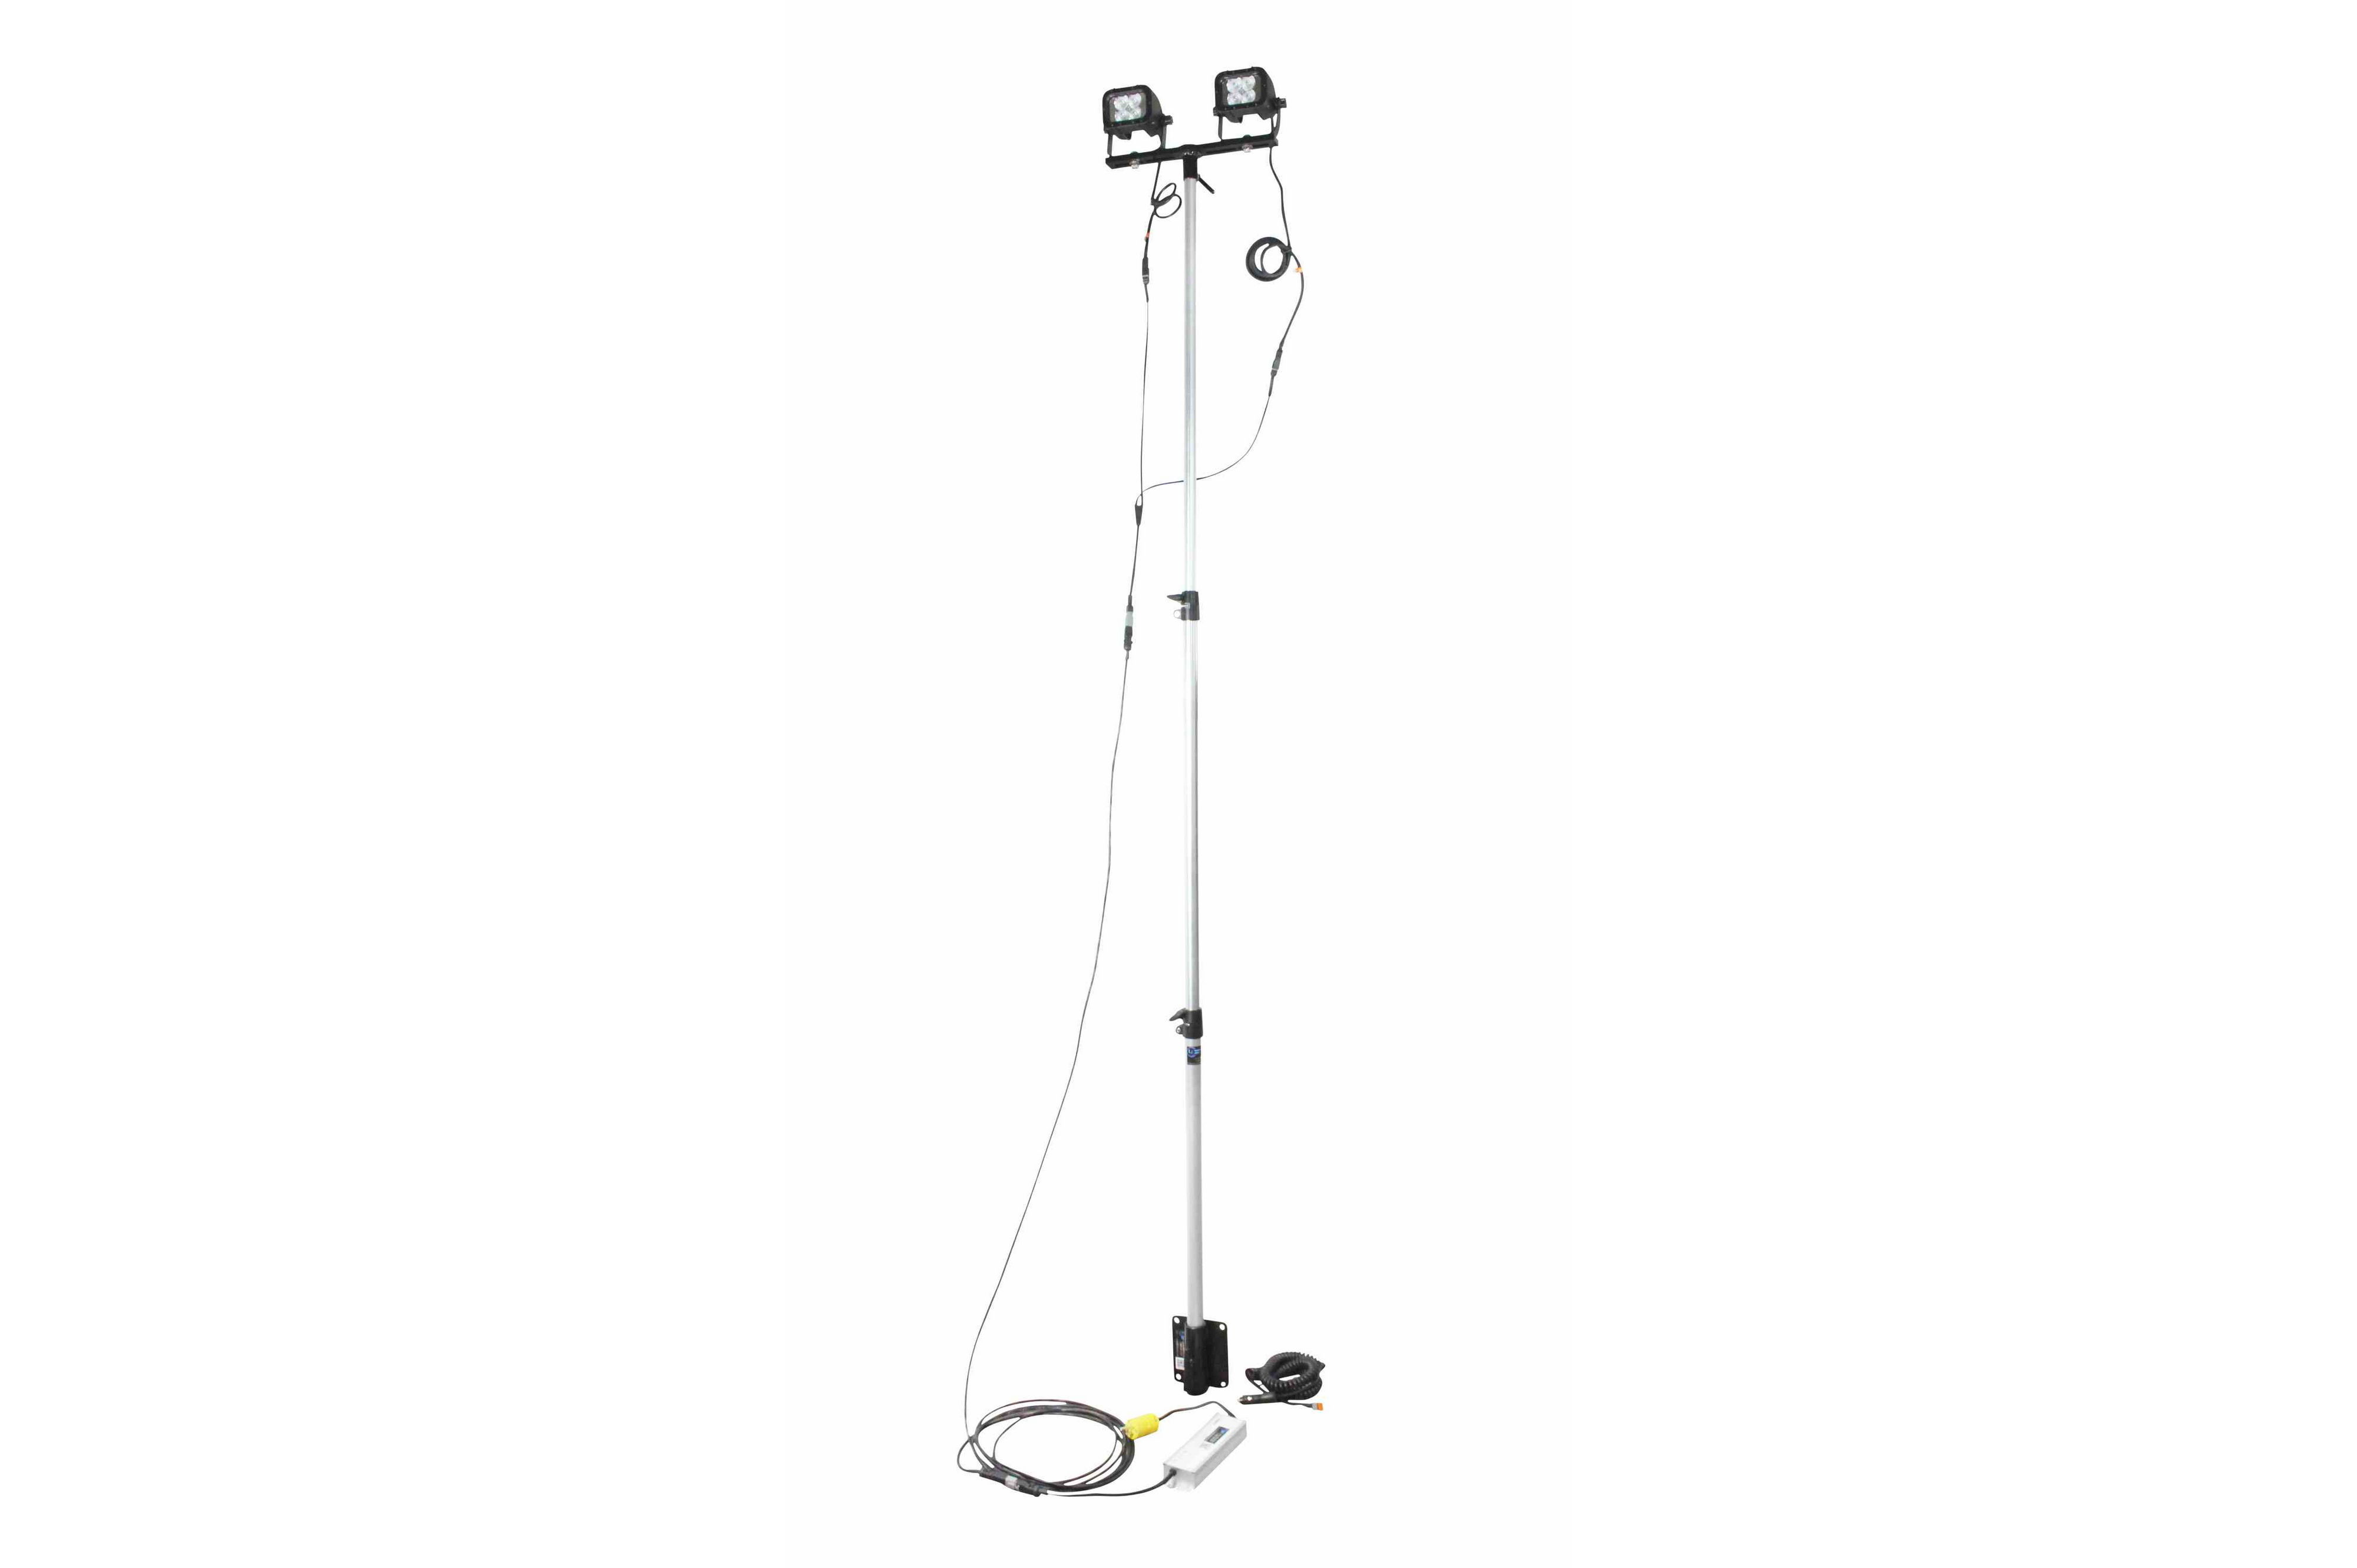 24 Watt Portable Led Telescoping Light Pole